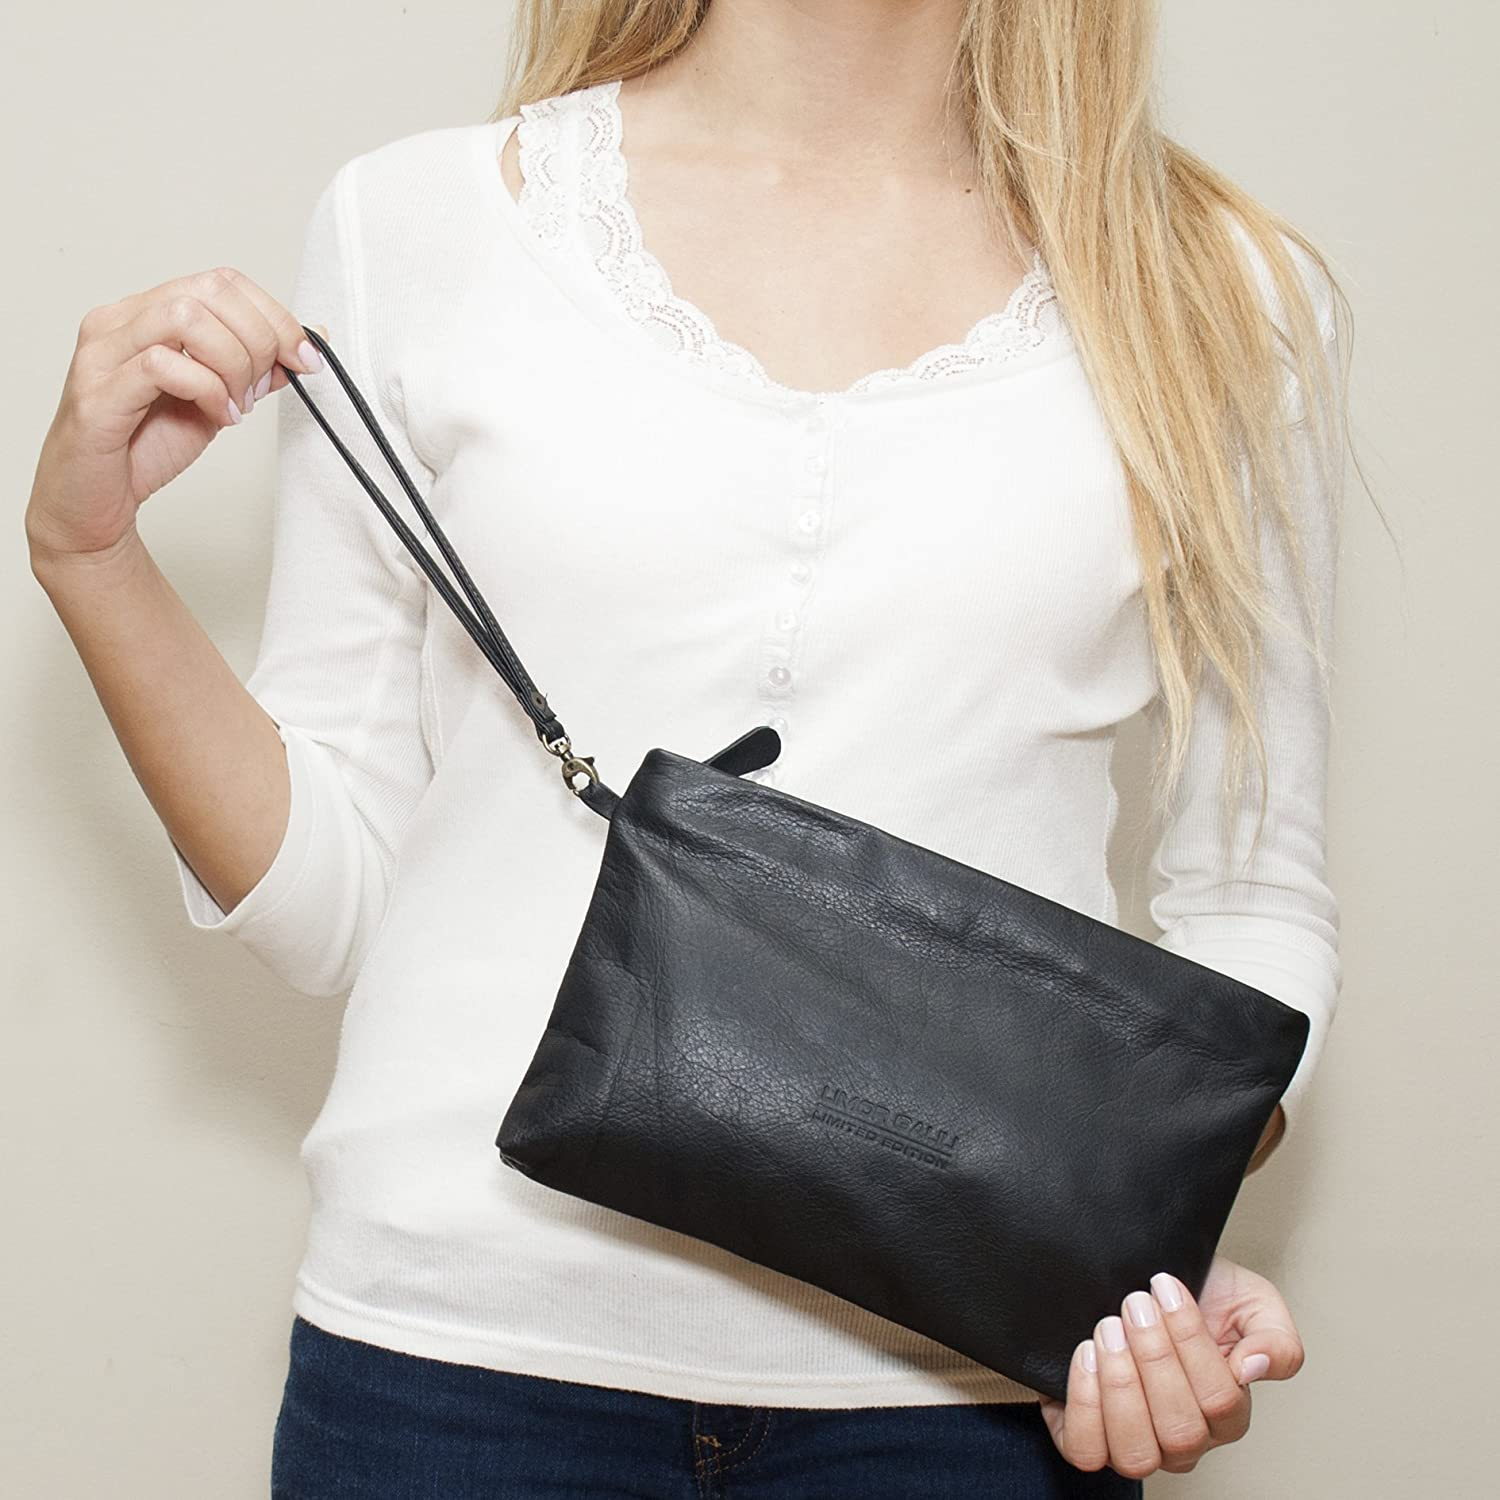 latest trends biggest discount many choices of Amazon.com: Black leather pouch Wristlet strap clutch with ...